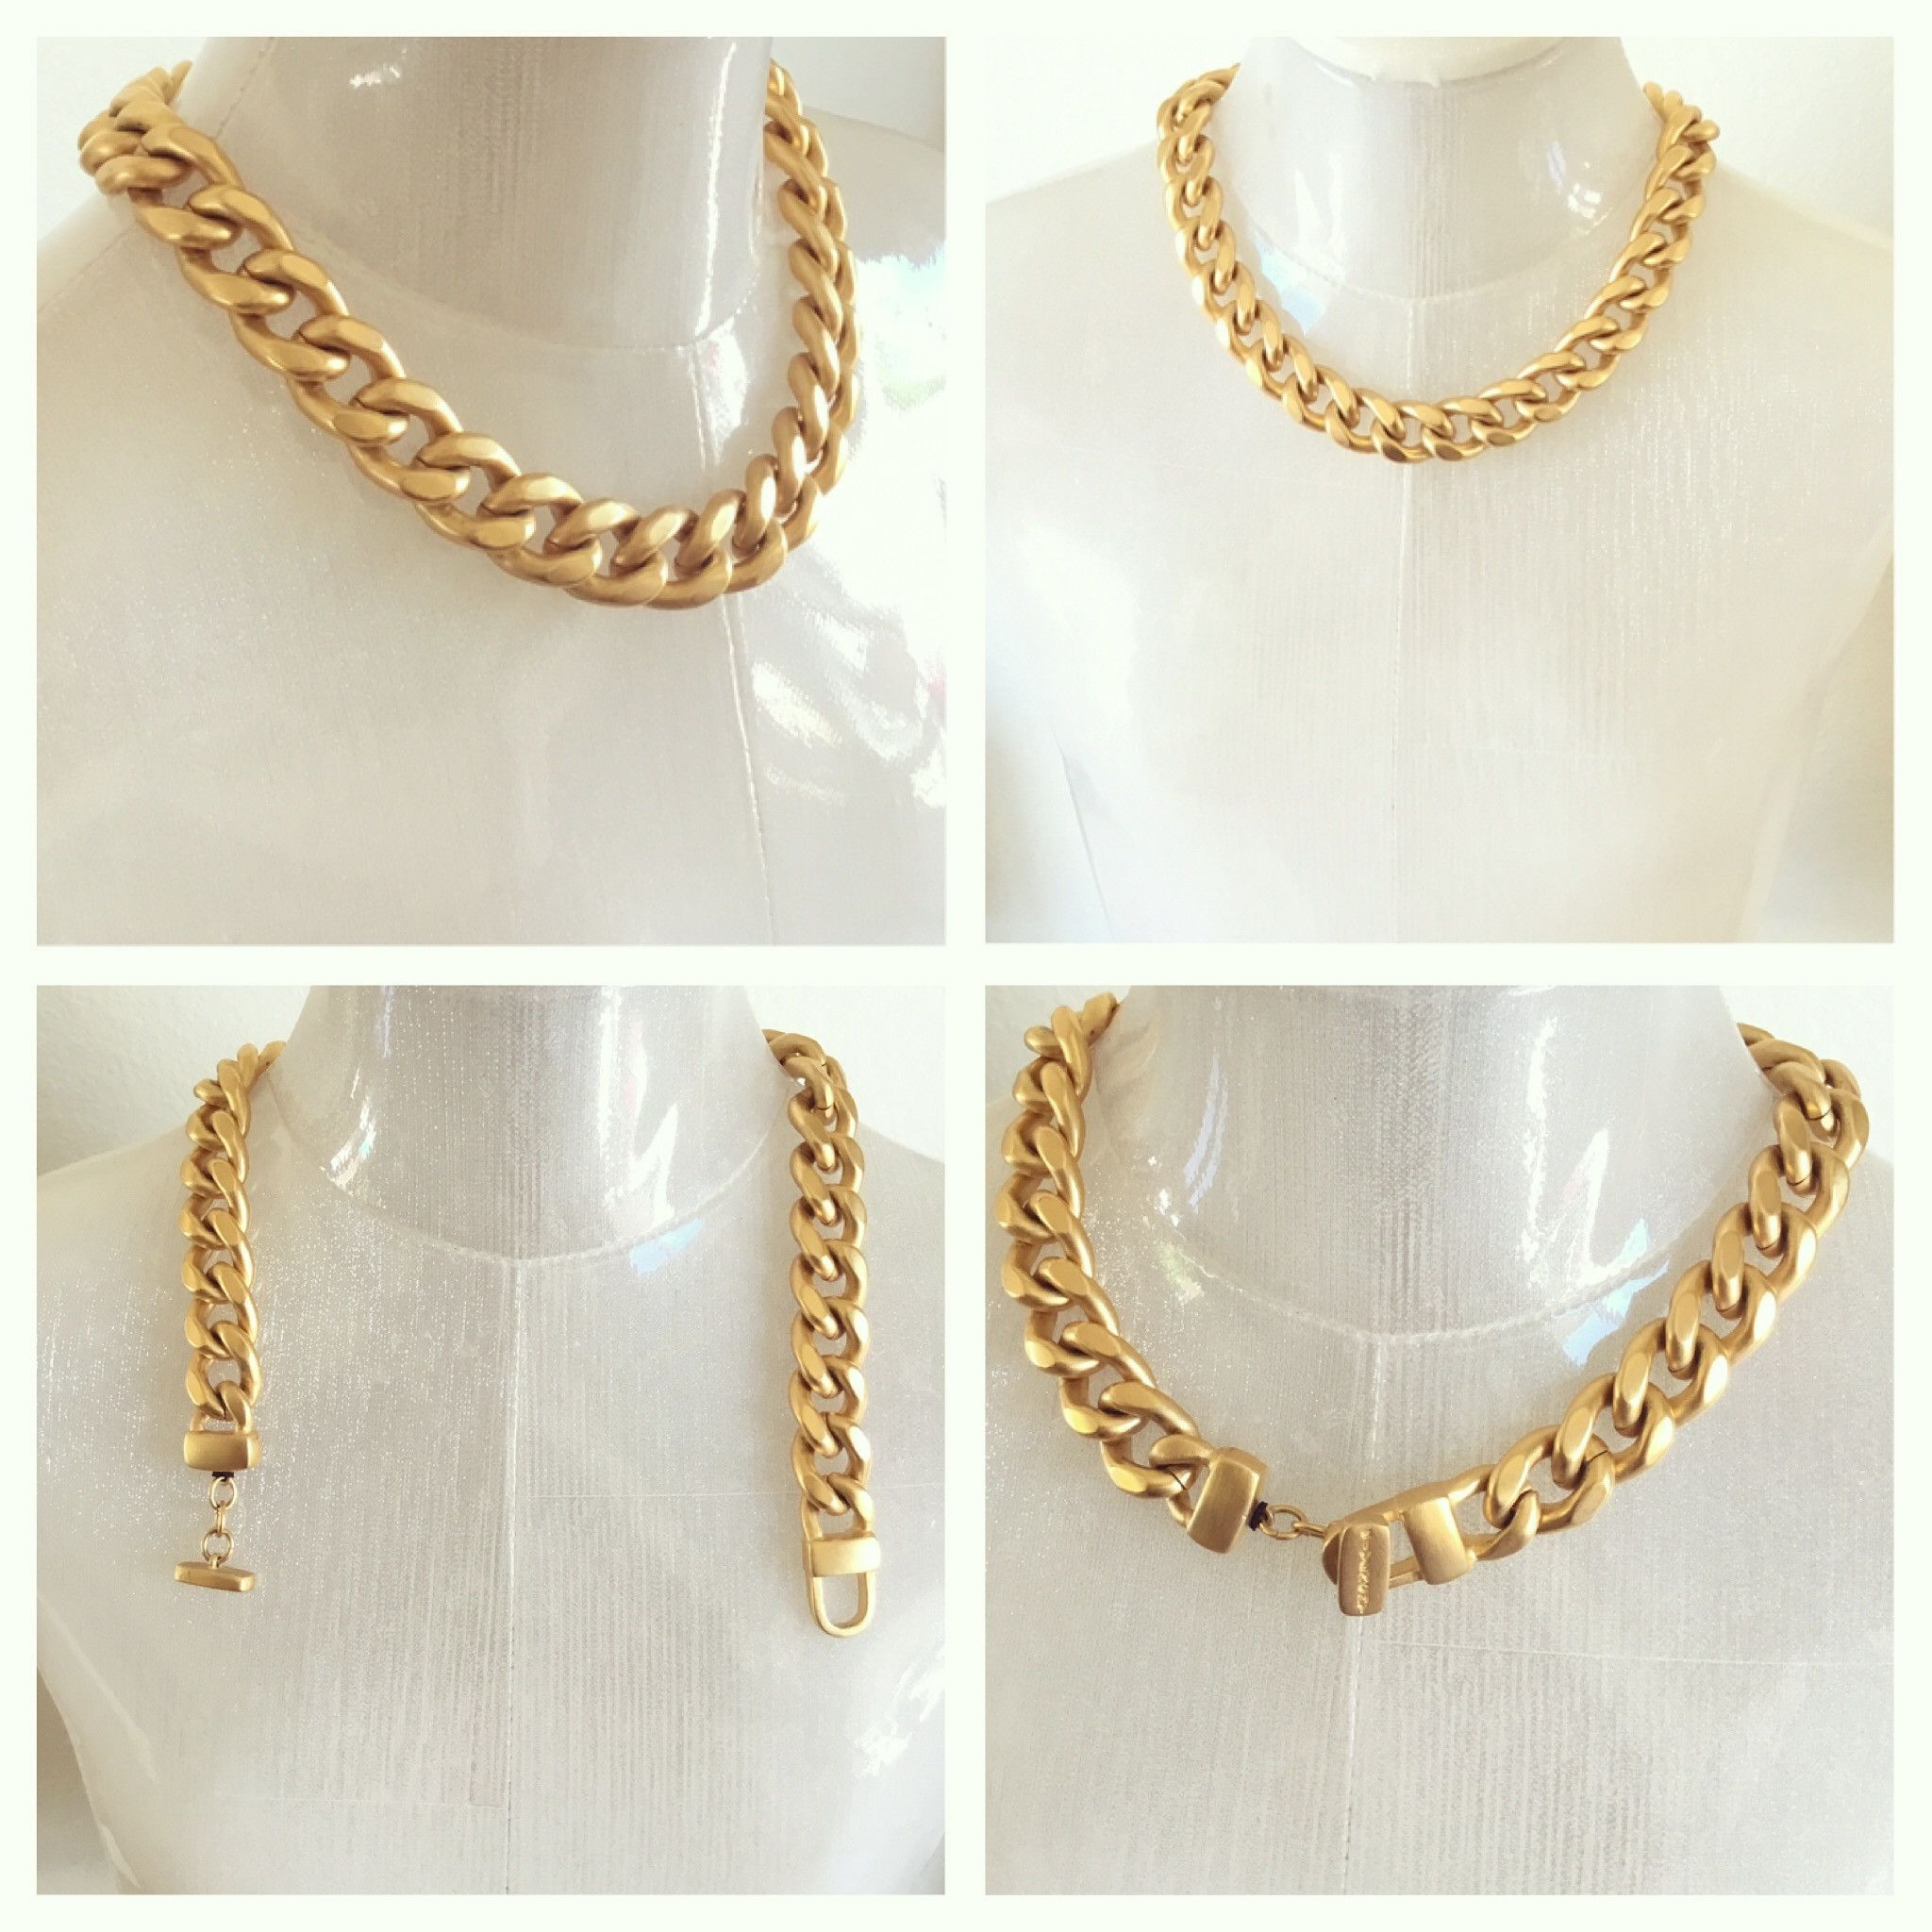 rg collections horseshoe t product collection gold bar gemma rose page chains category jgemma bubble j bracelet